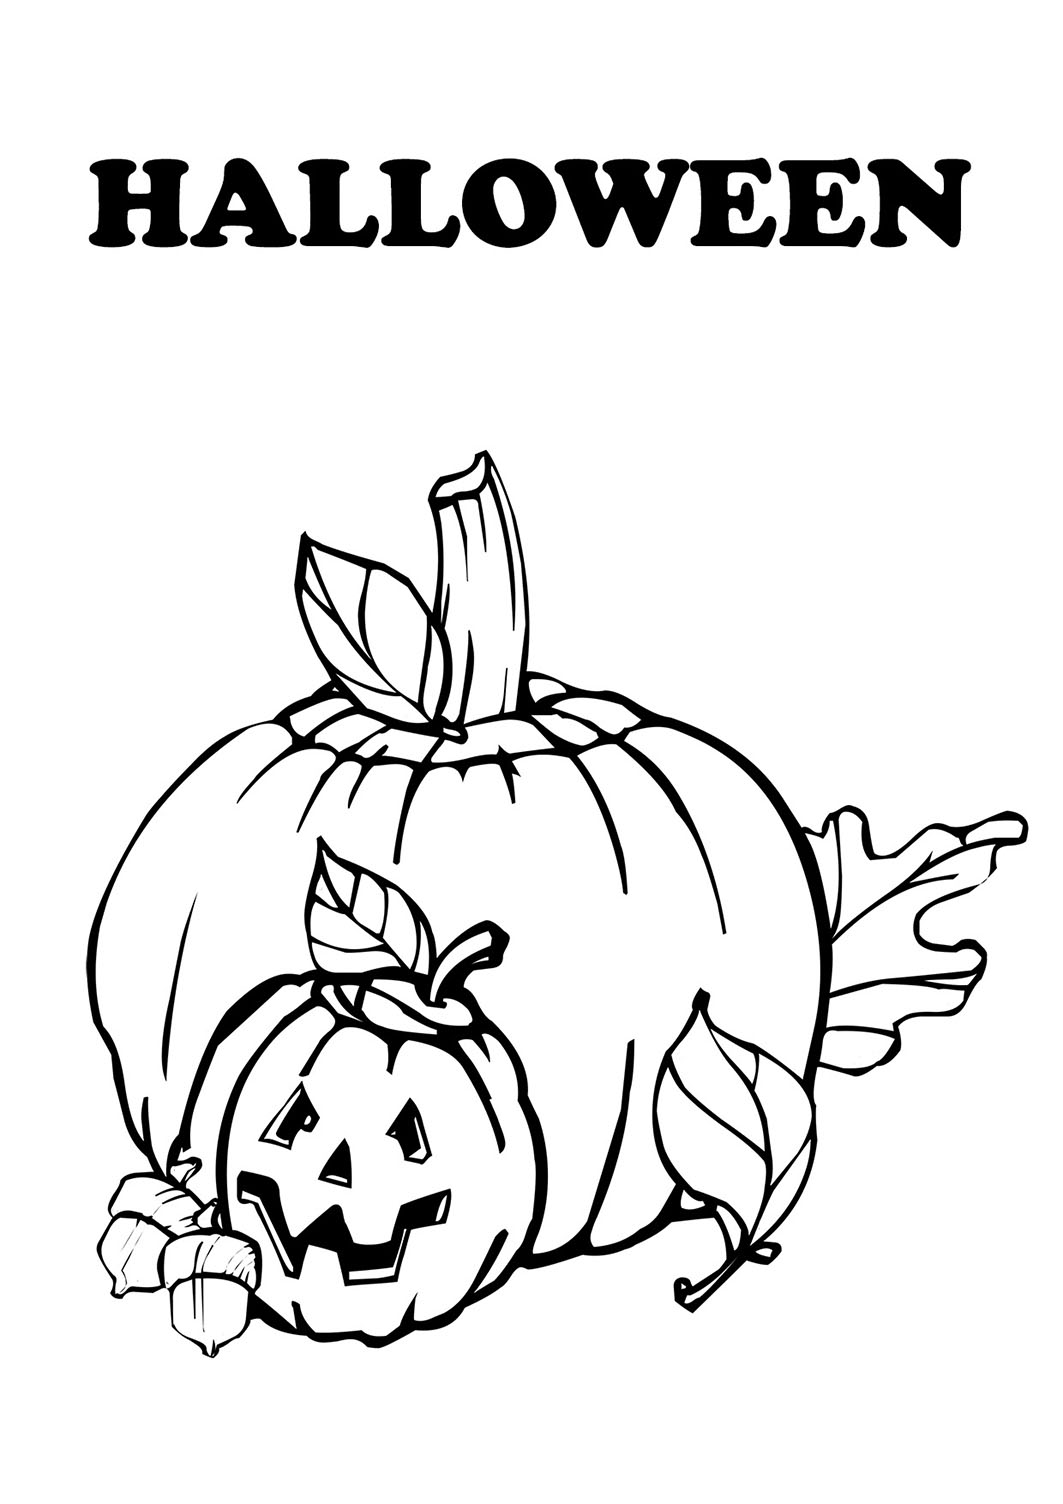 halloween coloring pages pumpkin scary halloween pumpkin coloring pages team colors halloween pumpkin coloring pages